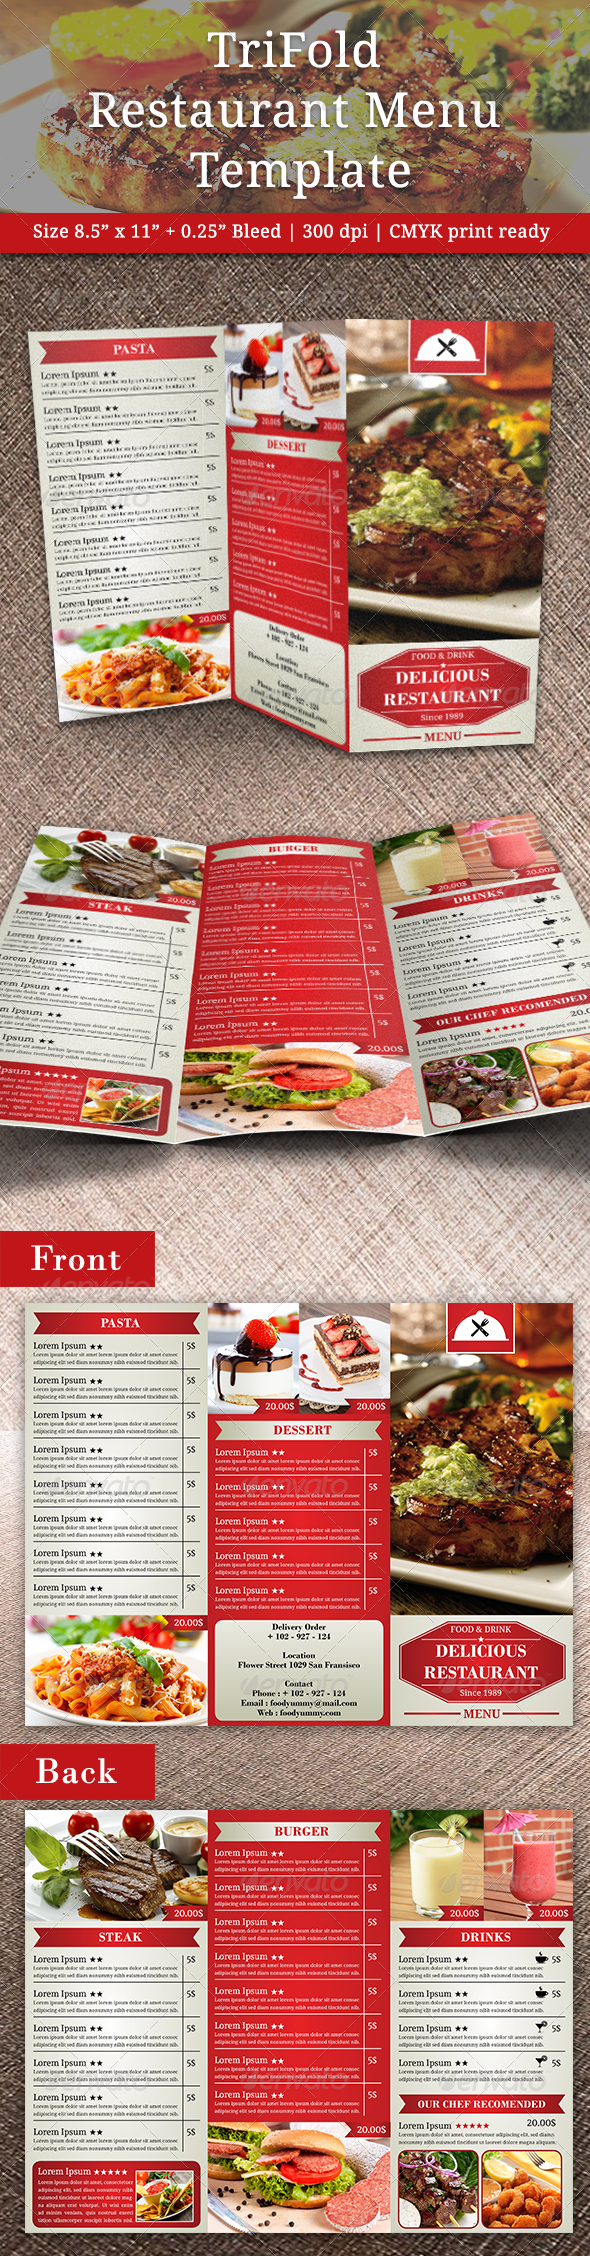 GraphicRiver TriFold Restaurant Menu Template Vol 2 7957252